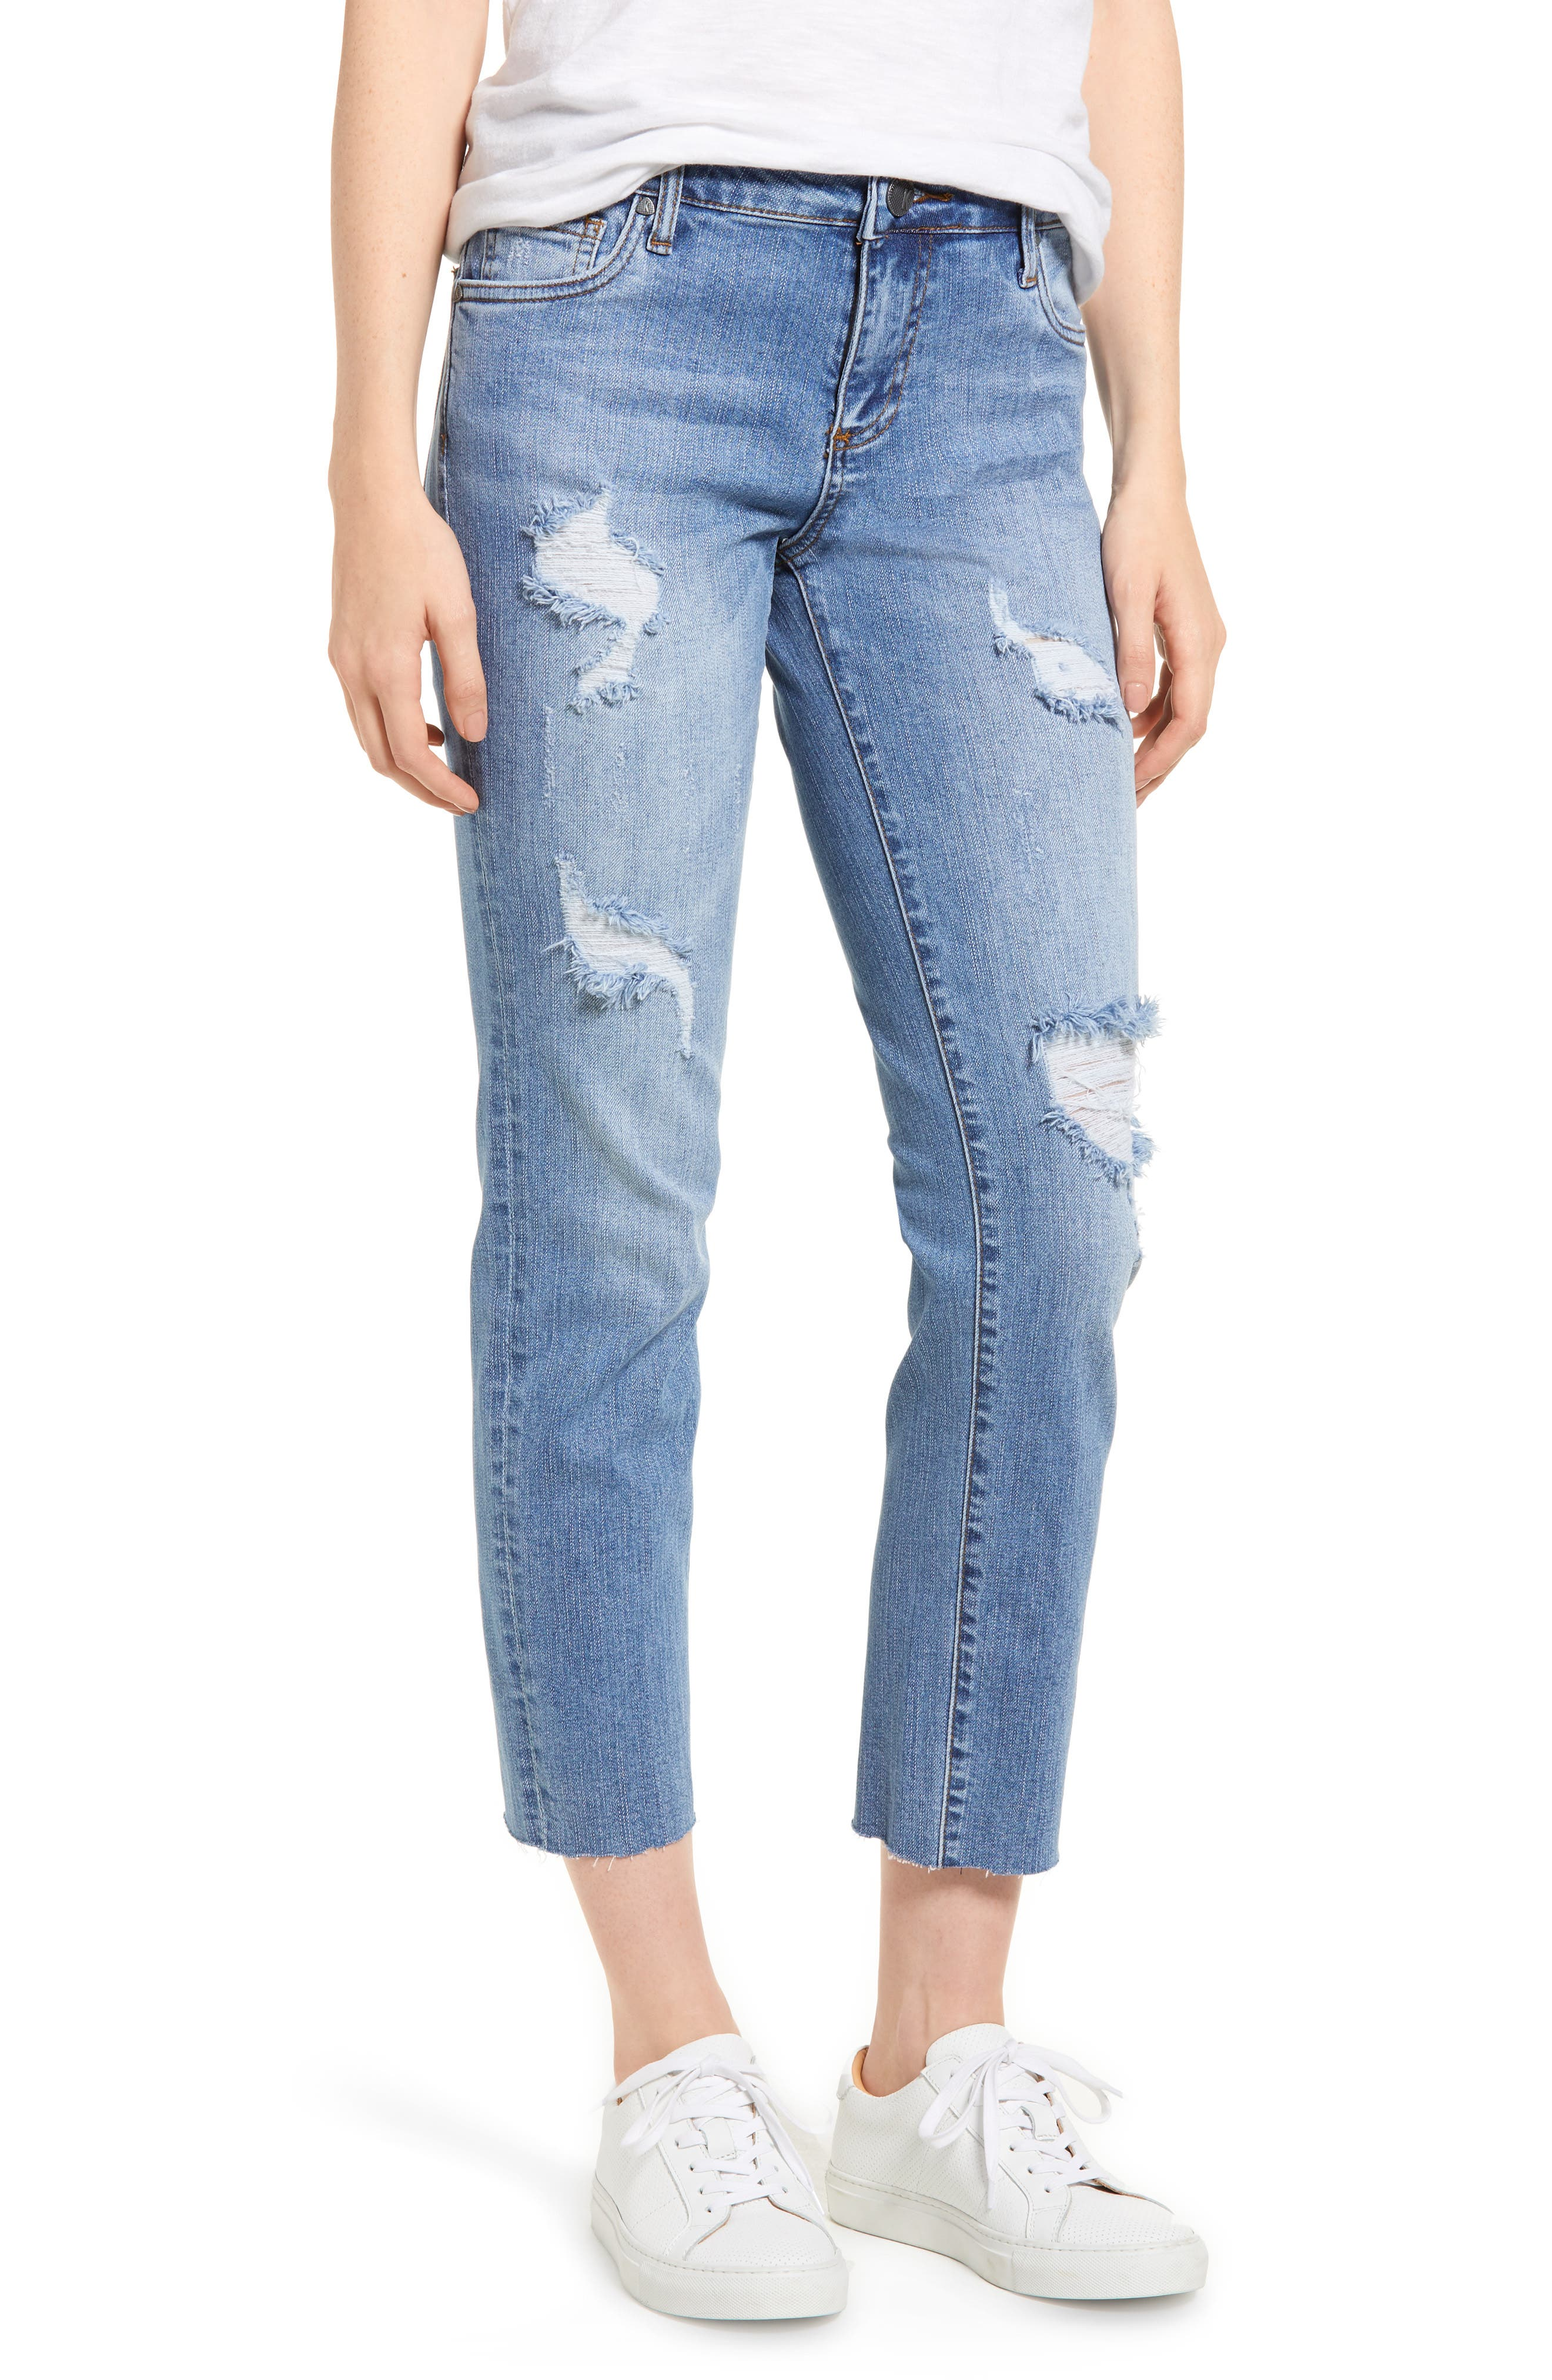 Reese Ripped Raw Edge Ankle Jeans,                             Main thumbnail 1, color,                             Assess